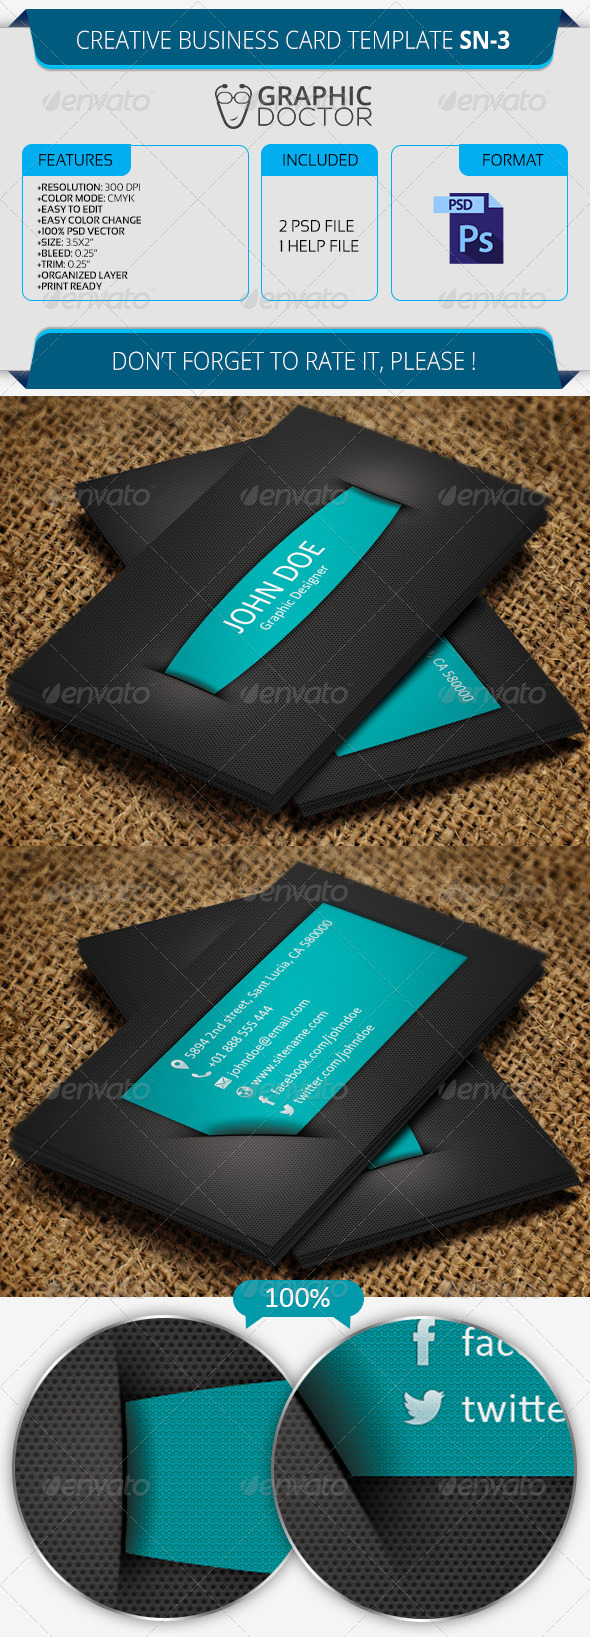 Creative Business Card Template SN-3